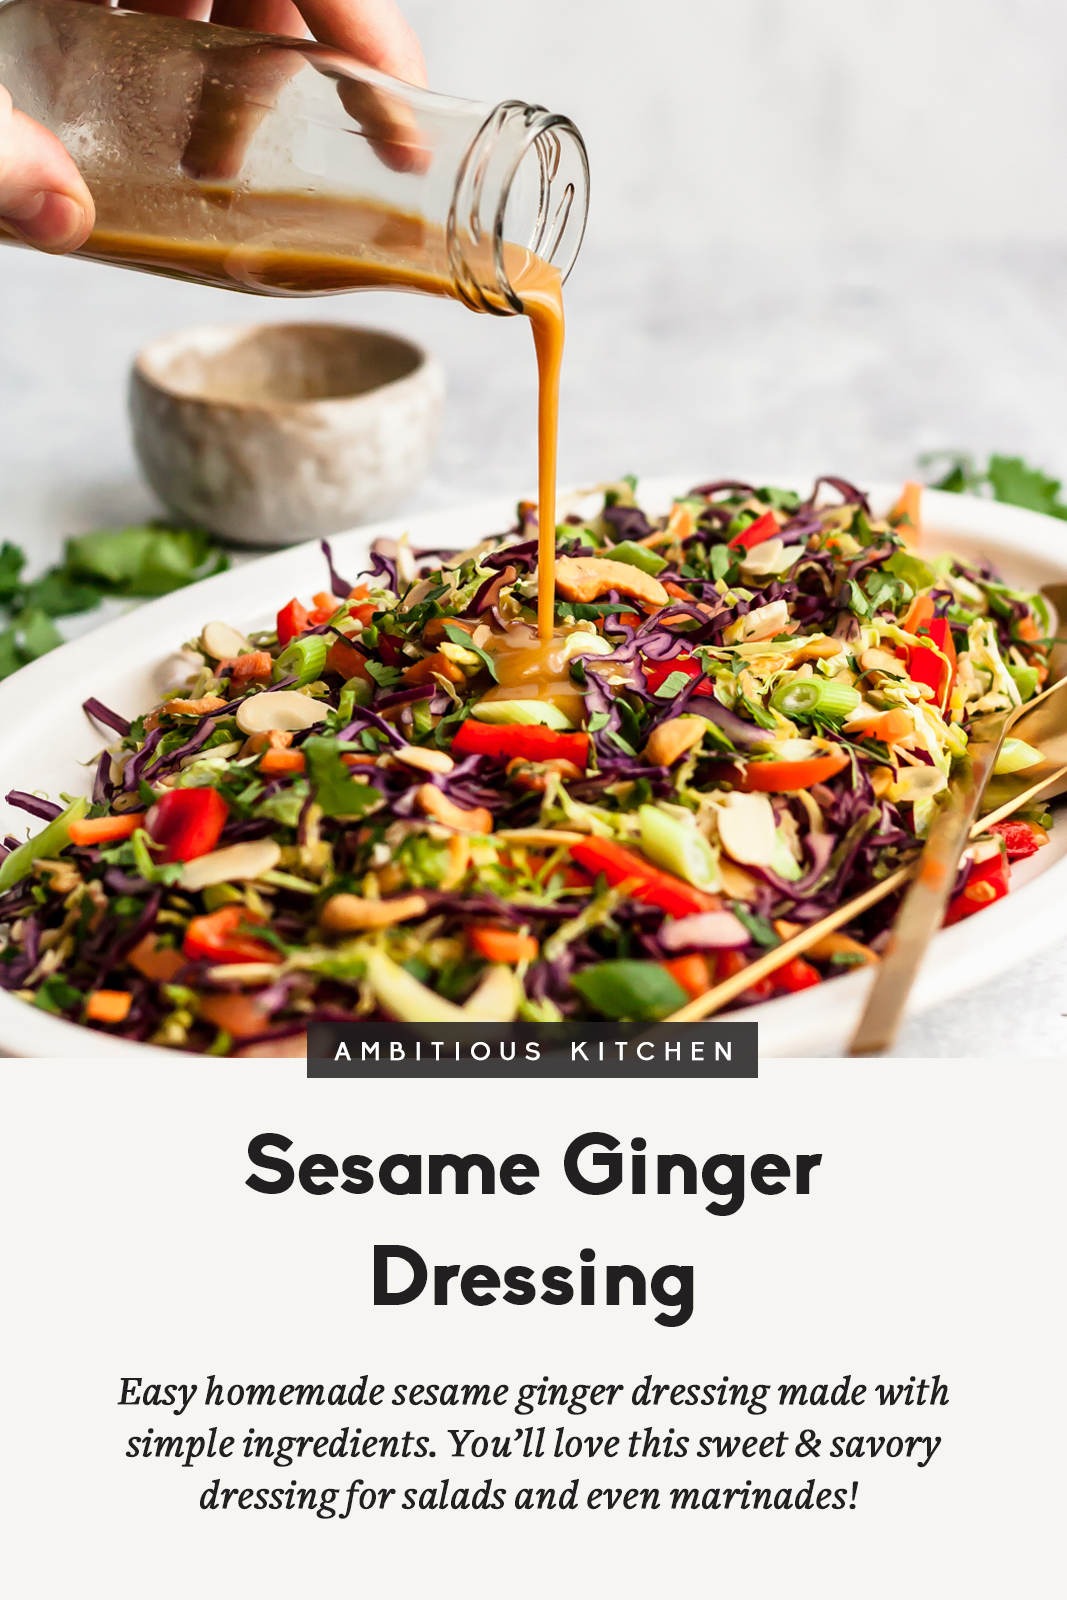 Flavorful, easy sesame ginger dressing made with simple ingredients. This healthy homemade dressing is sweet & savory, and perfect for adding to veggie packed salads or using as a marinade.